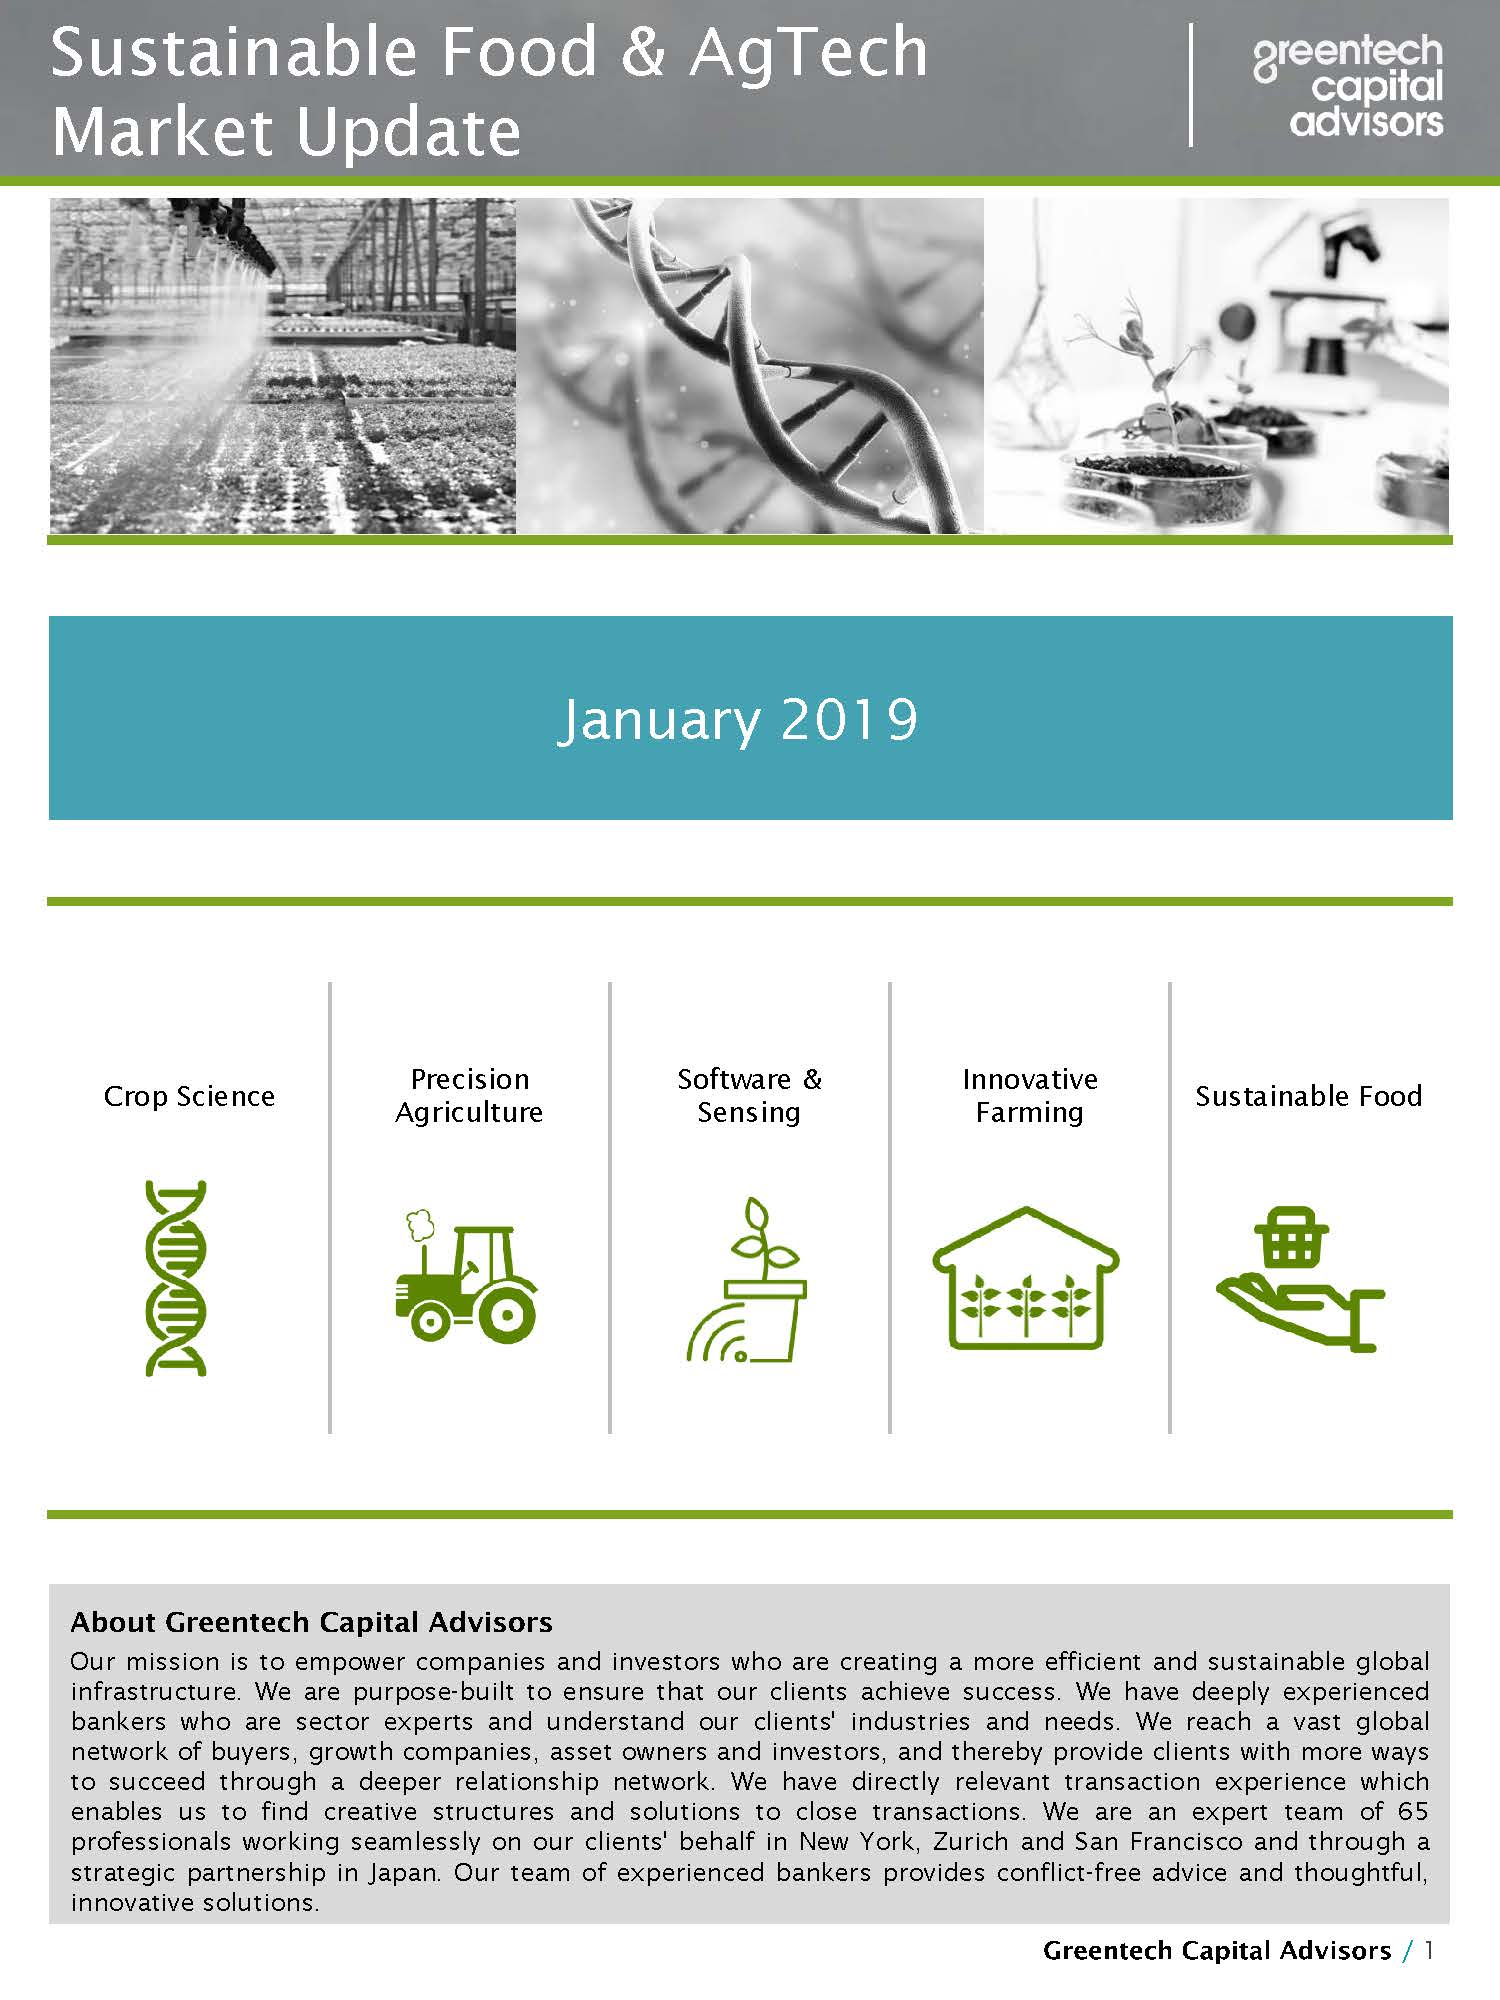 Sustainable Food & AgTech Market Update Newsletter - January 2019